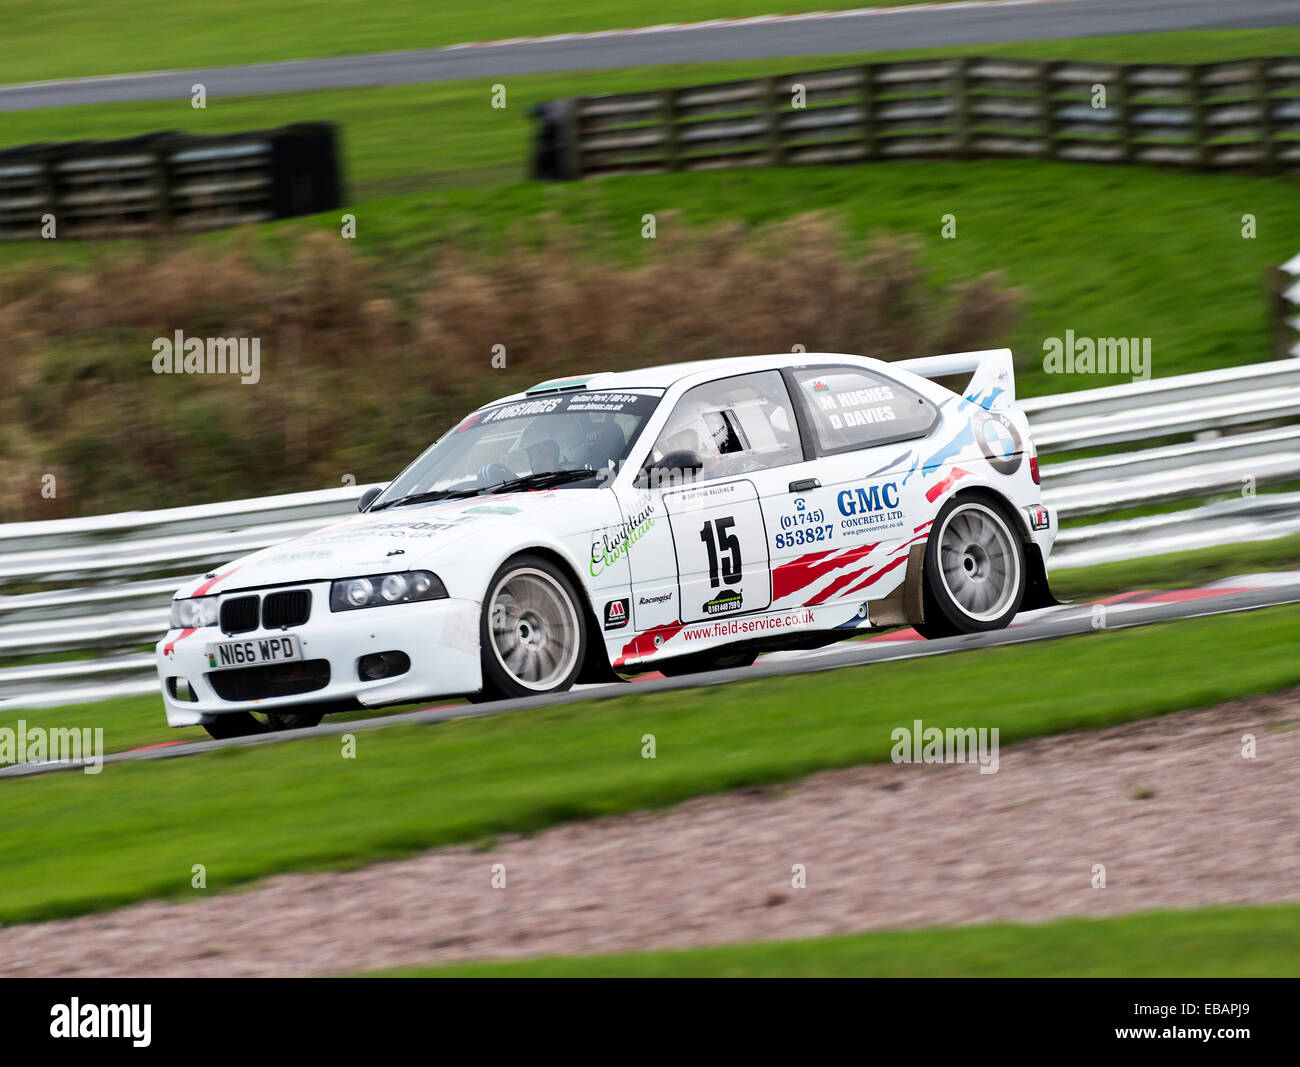 Bmw Compact M3 Rally Car In The Neil Howard Memorial Rally At Oulton